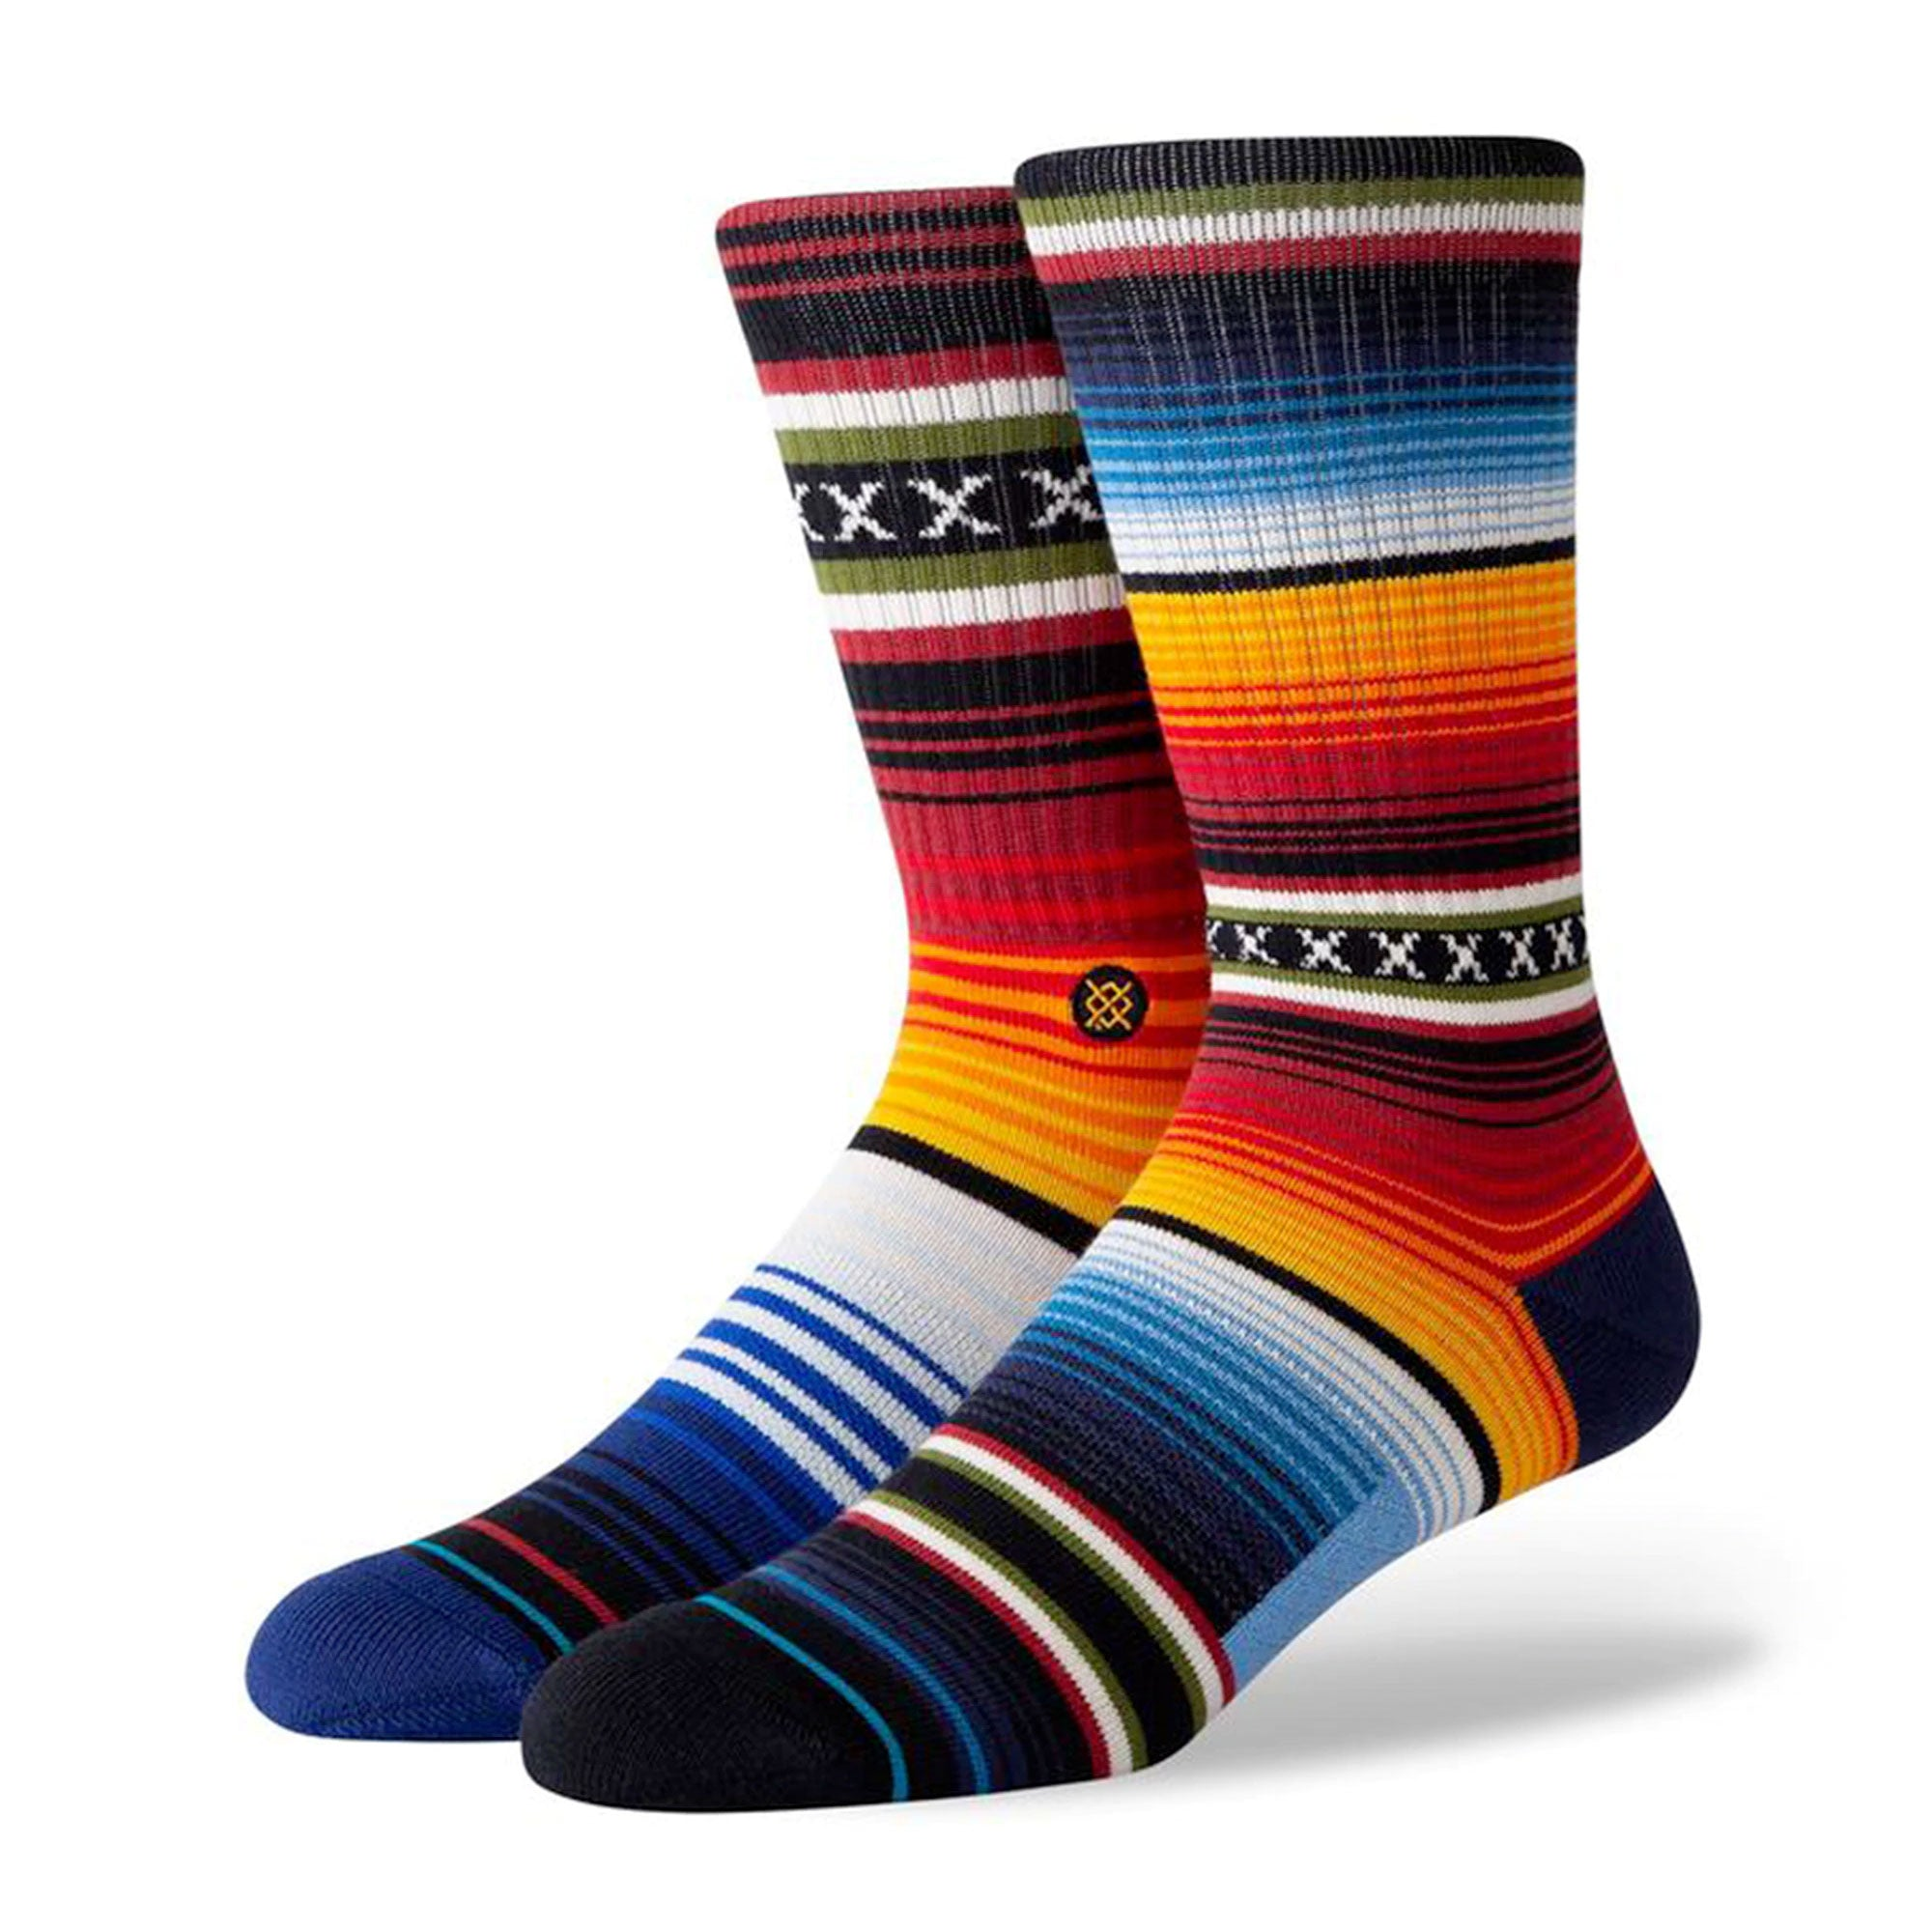 Stance Curren Men's Crew Socks